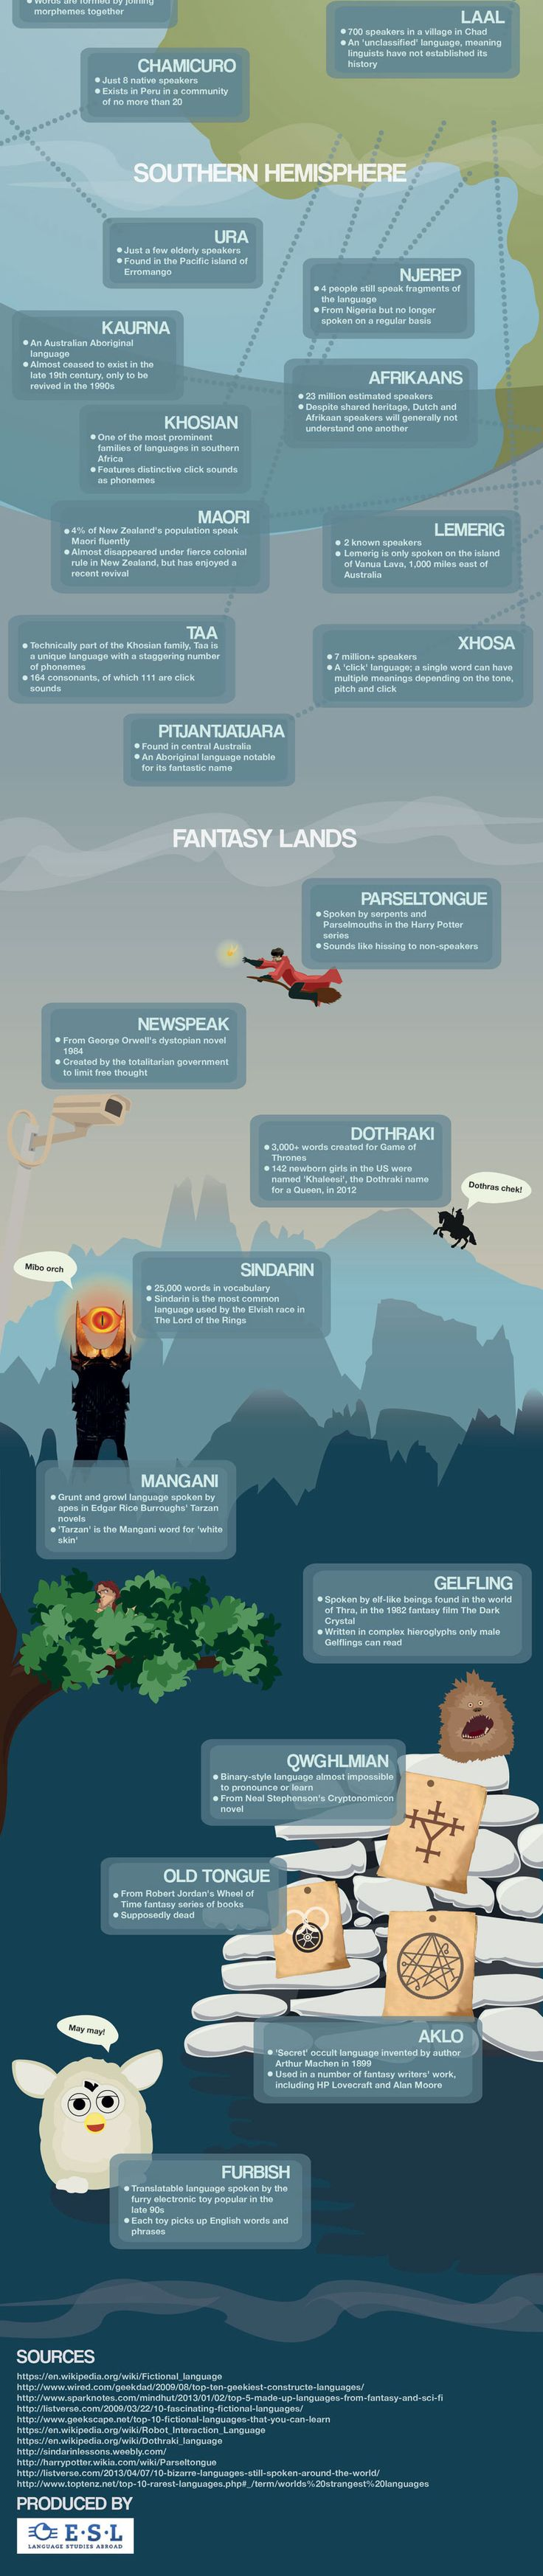 10 best Conlanging images on Pinterest | Languages, Signs and Writing